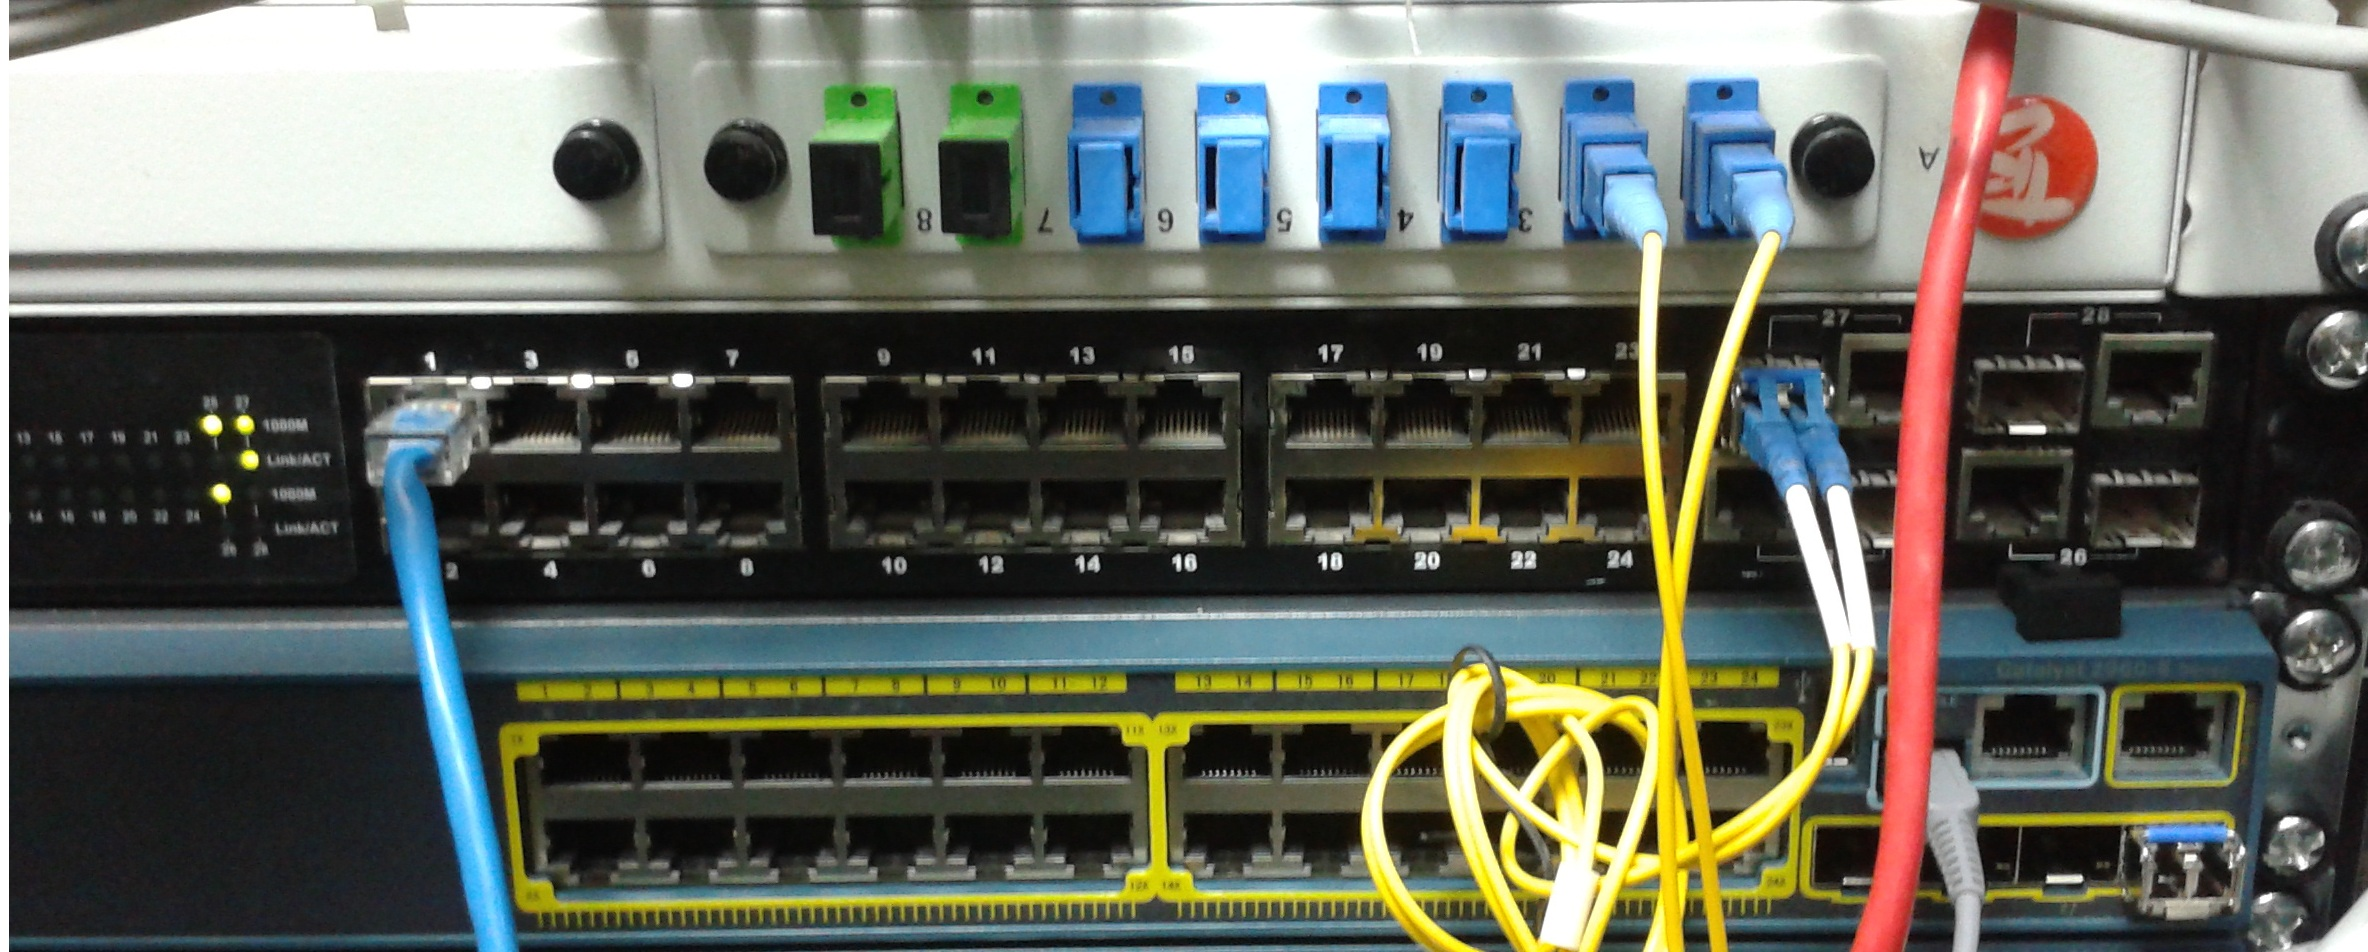 Help With Connection To Fiber Optic Lan Switching And